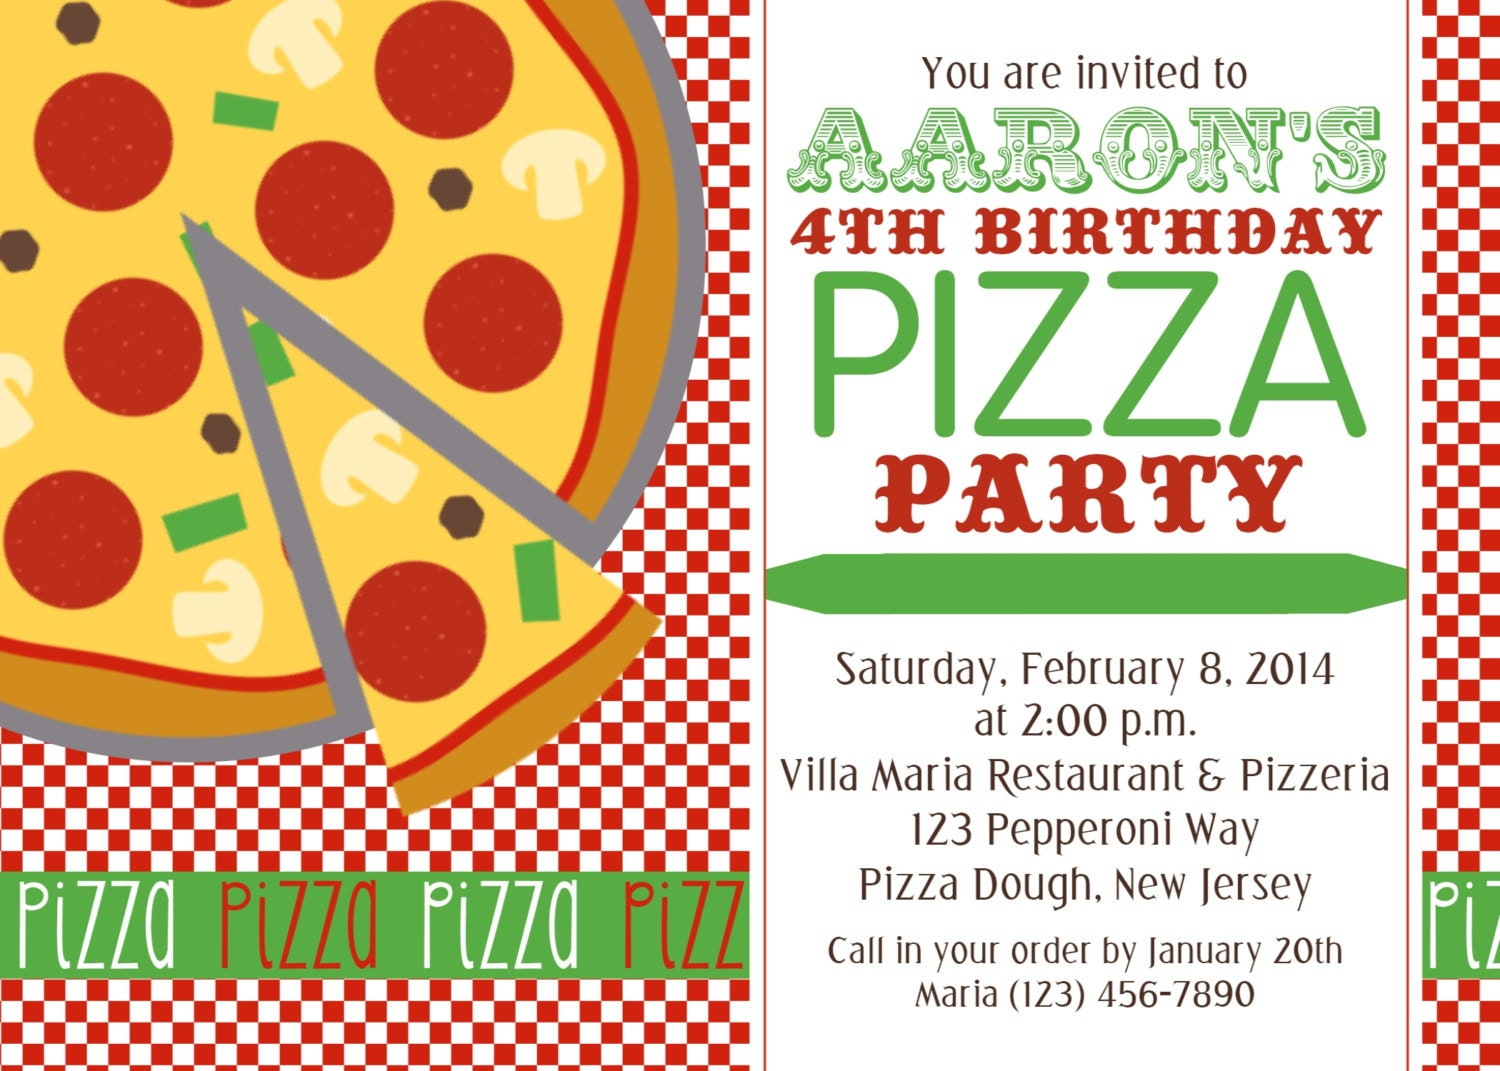 Pizza Party Invitation and get inspiration to create nice invitation ideas